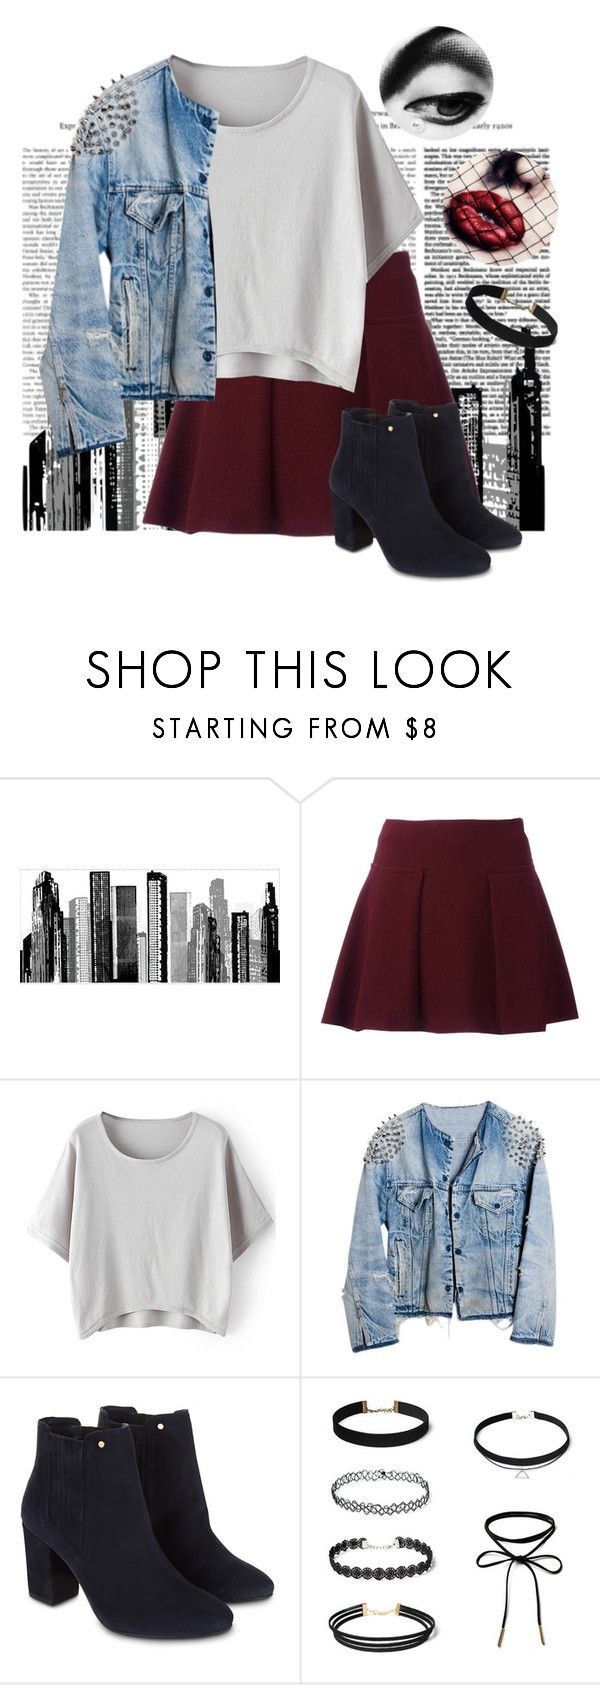 """""""Last first kiss"""" by grazielle-gaga ❤ liked on Polyvore featuring RoomMates Decor, Runwaydreamz and Monsoon"""